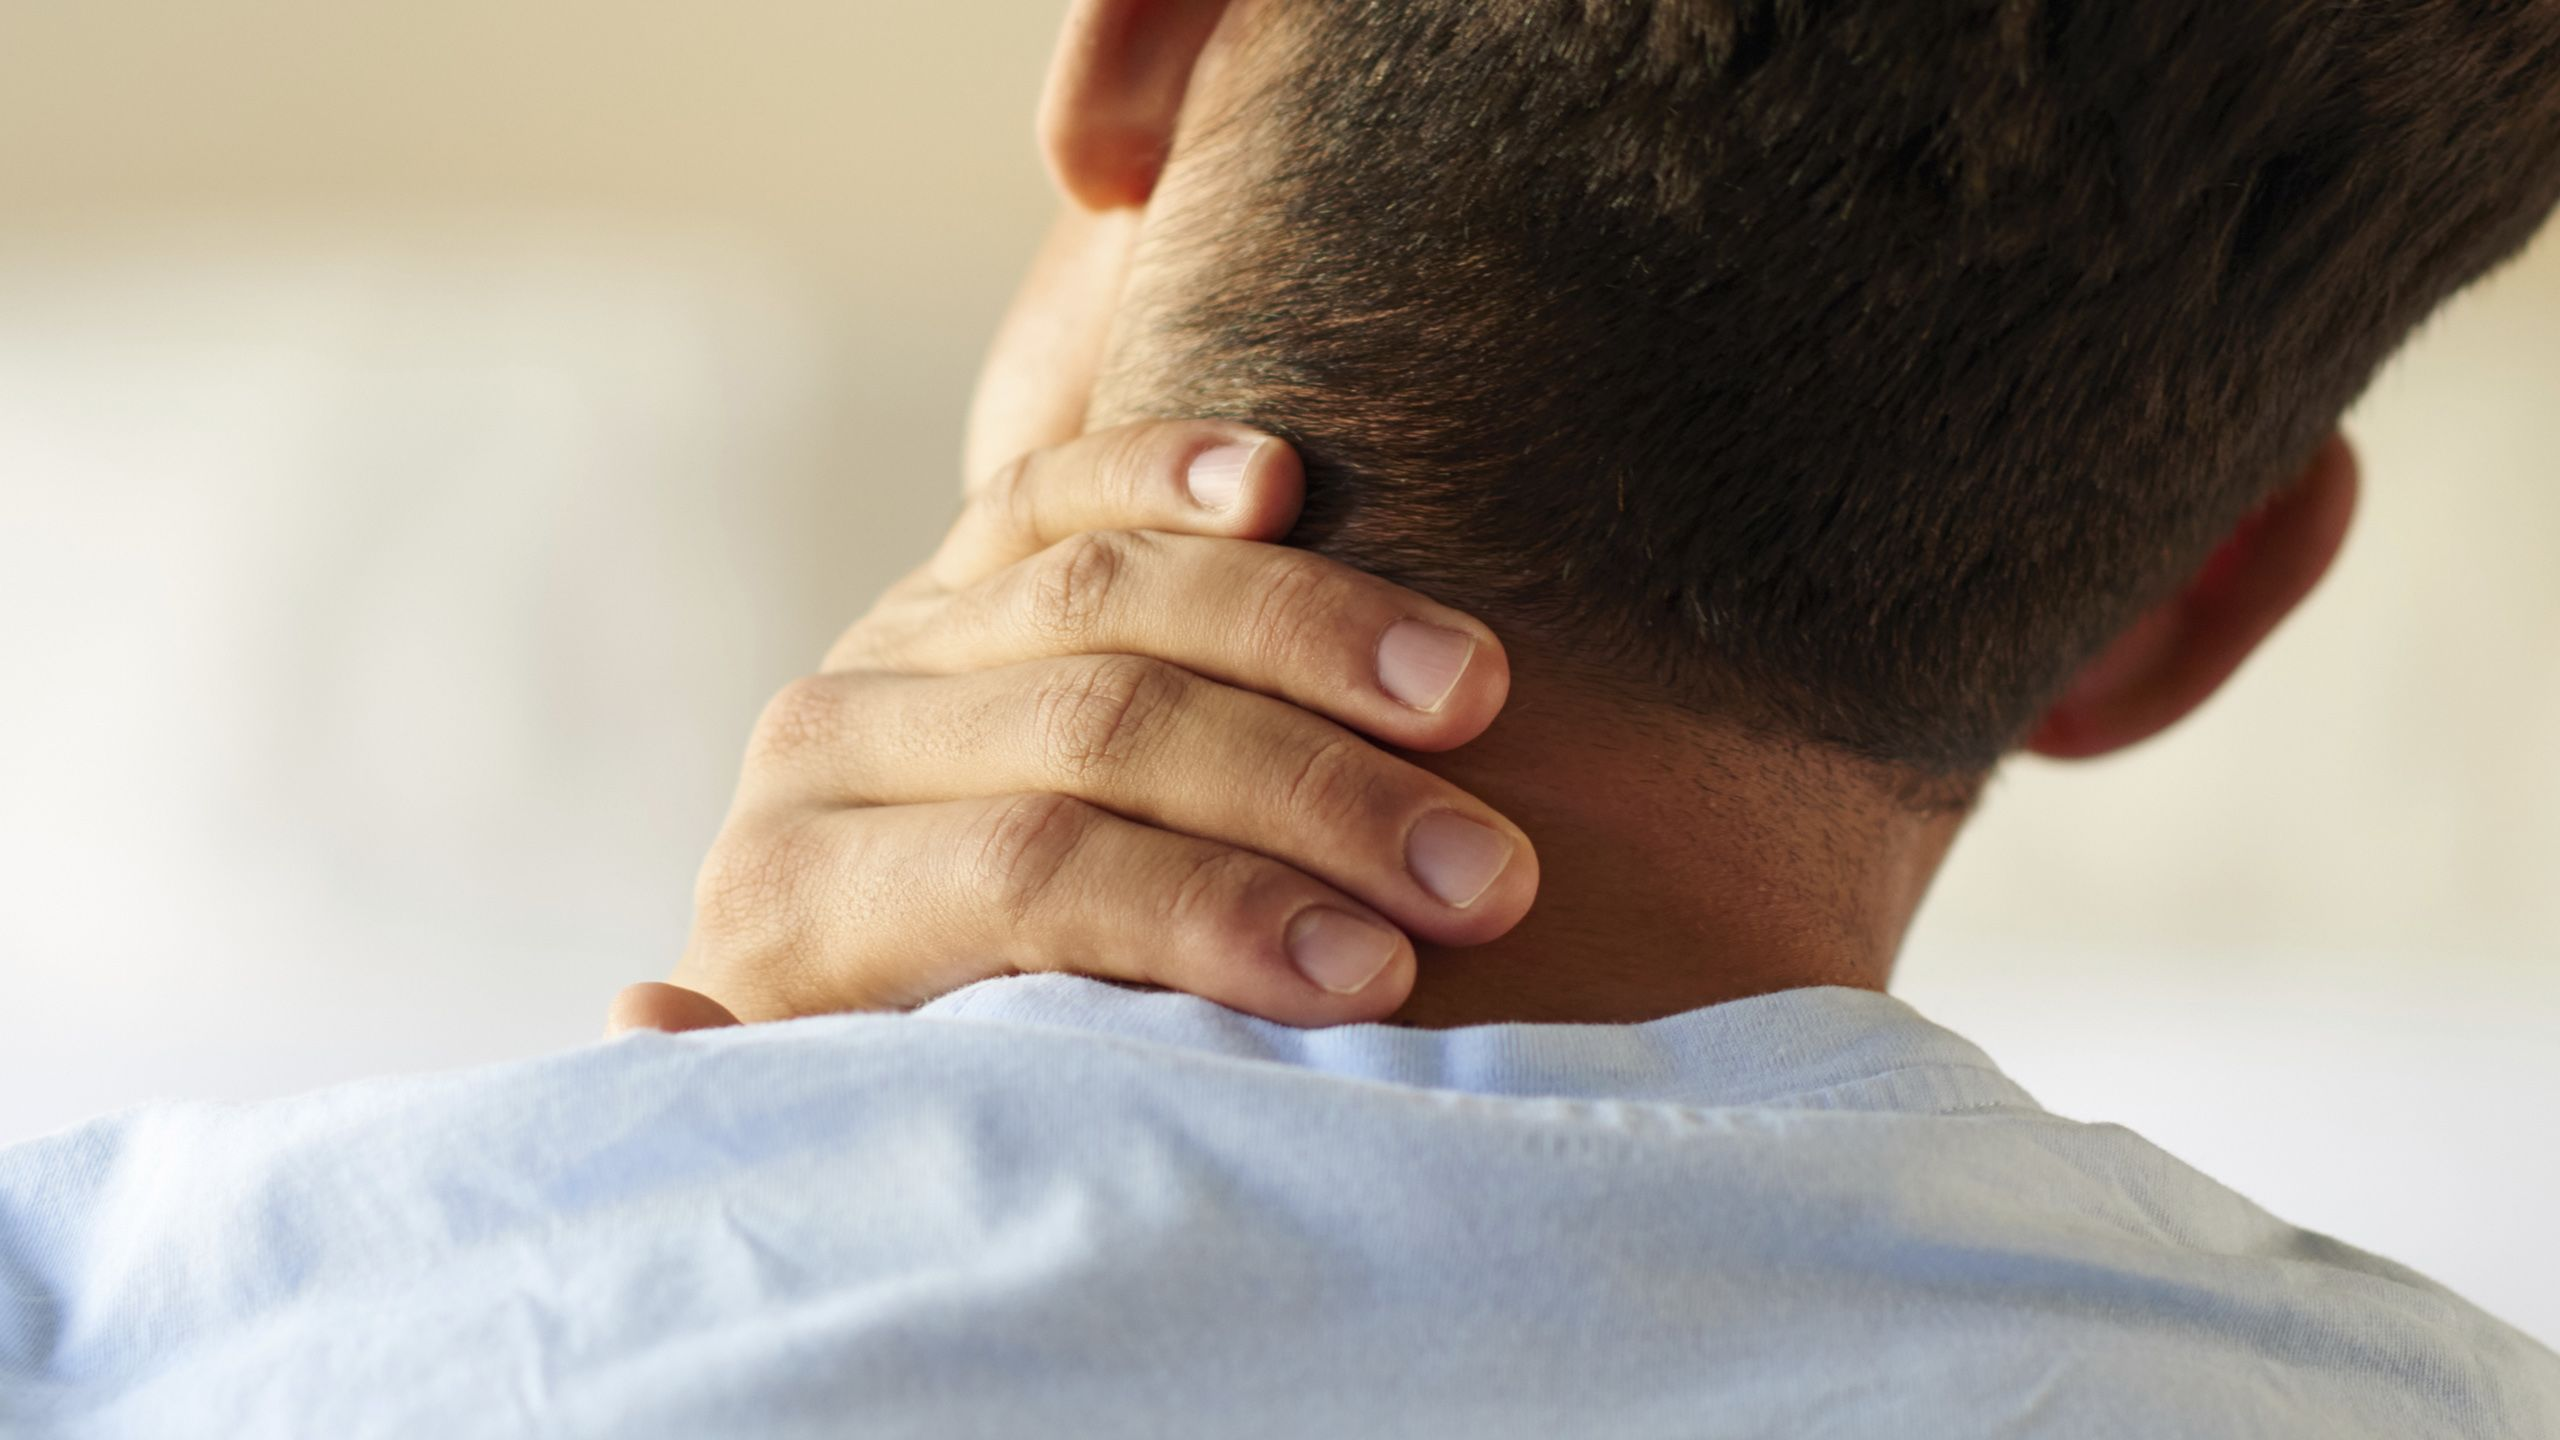 3 Tricks for Ending Neck Pain